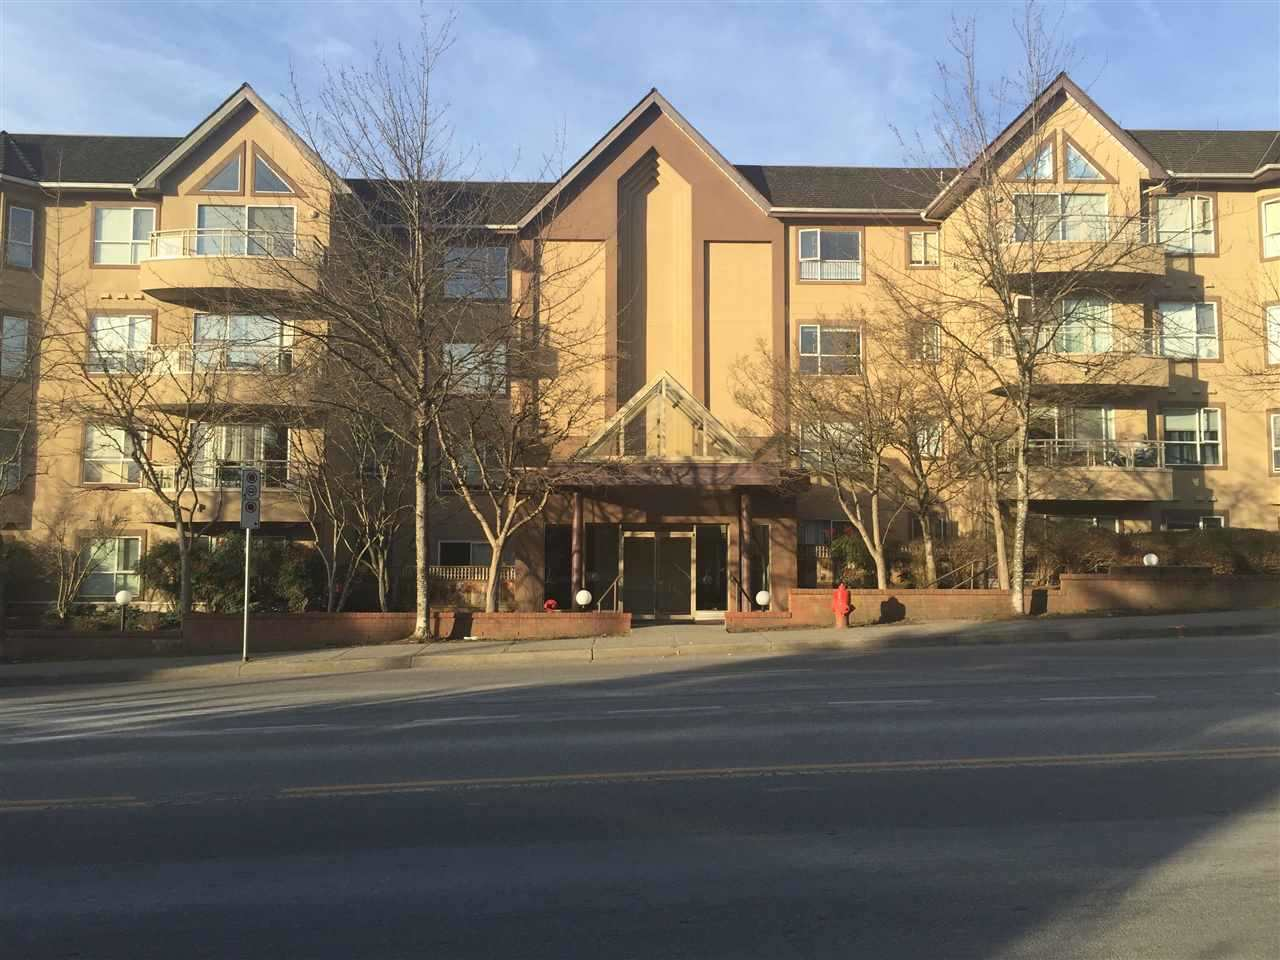 Main Photo: 107 2285 PITT RIVER Road in Port Coquitlam: Central Pt Coquitlam Condo for sale : MLS® # R2170957